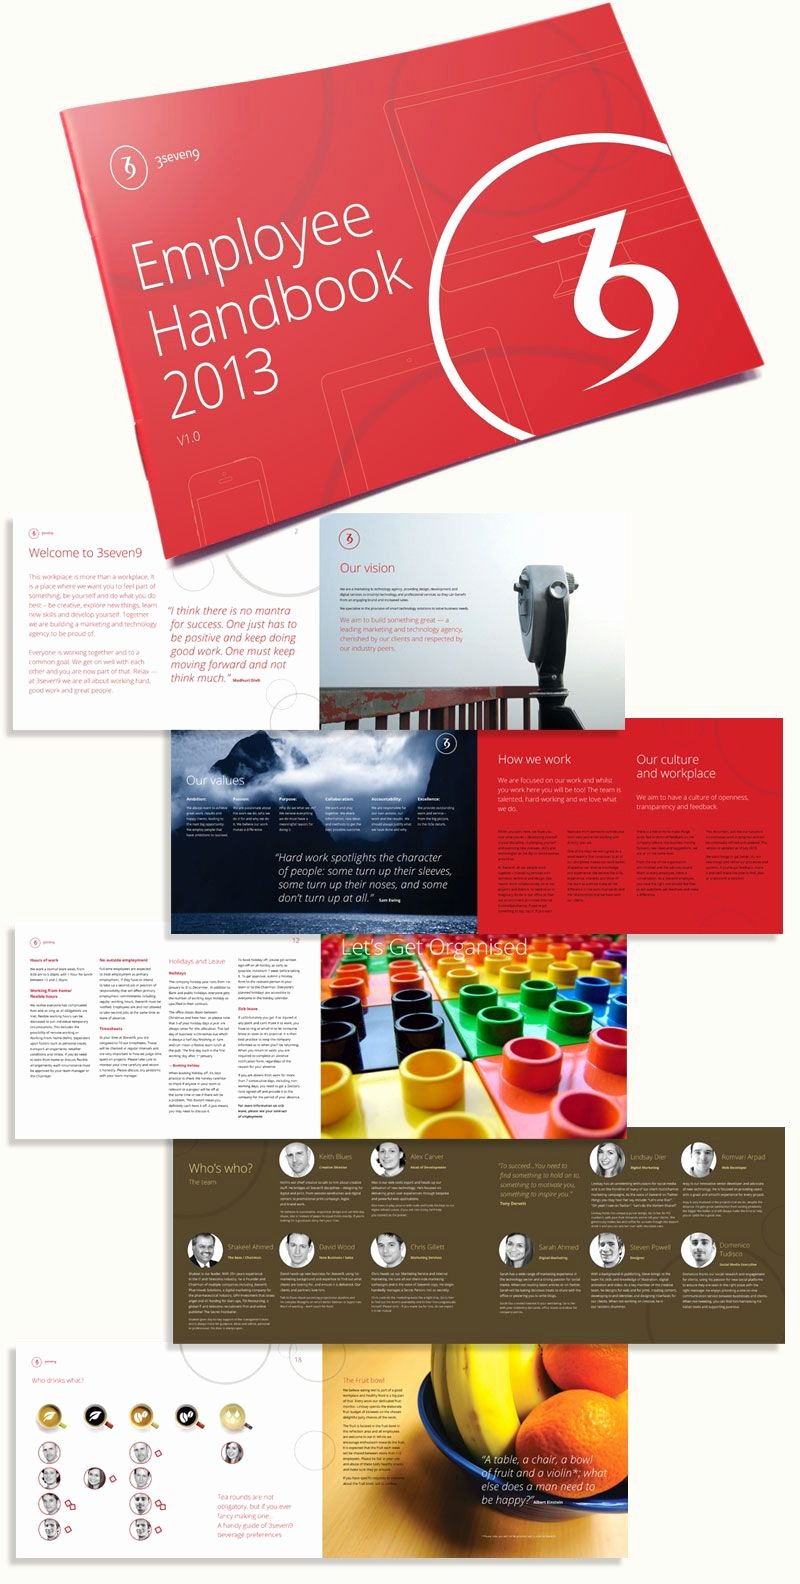 Employee Handbook Design Template New Best 25 Employee Handbook Ideas On Pinterest